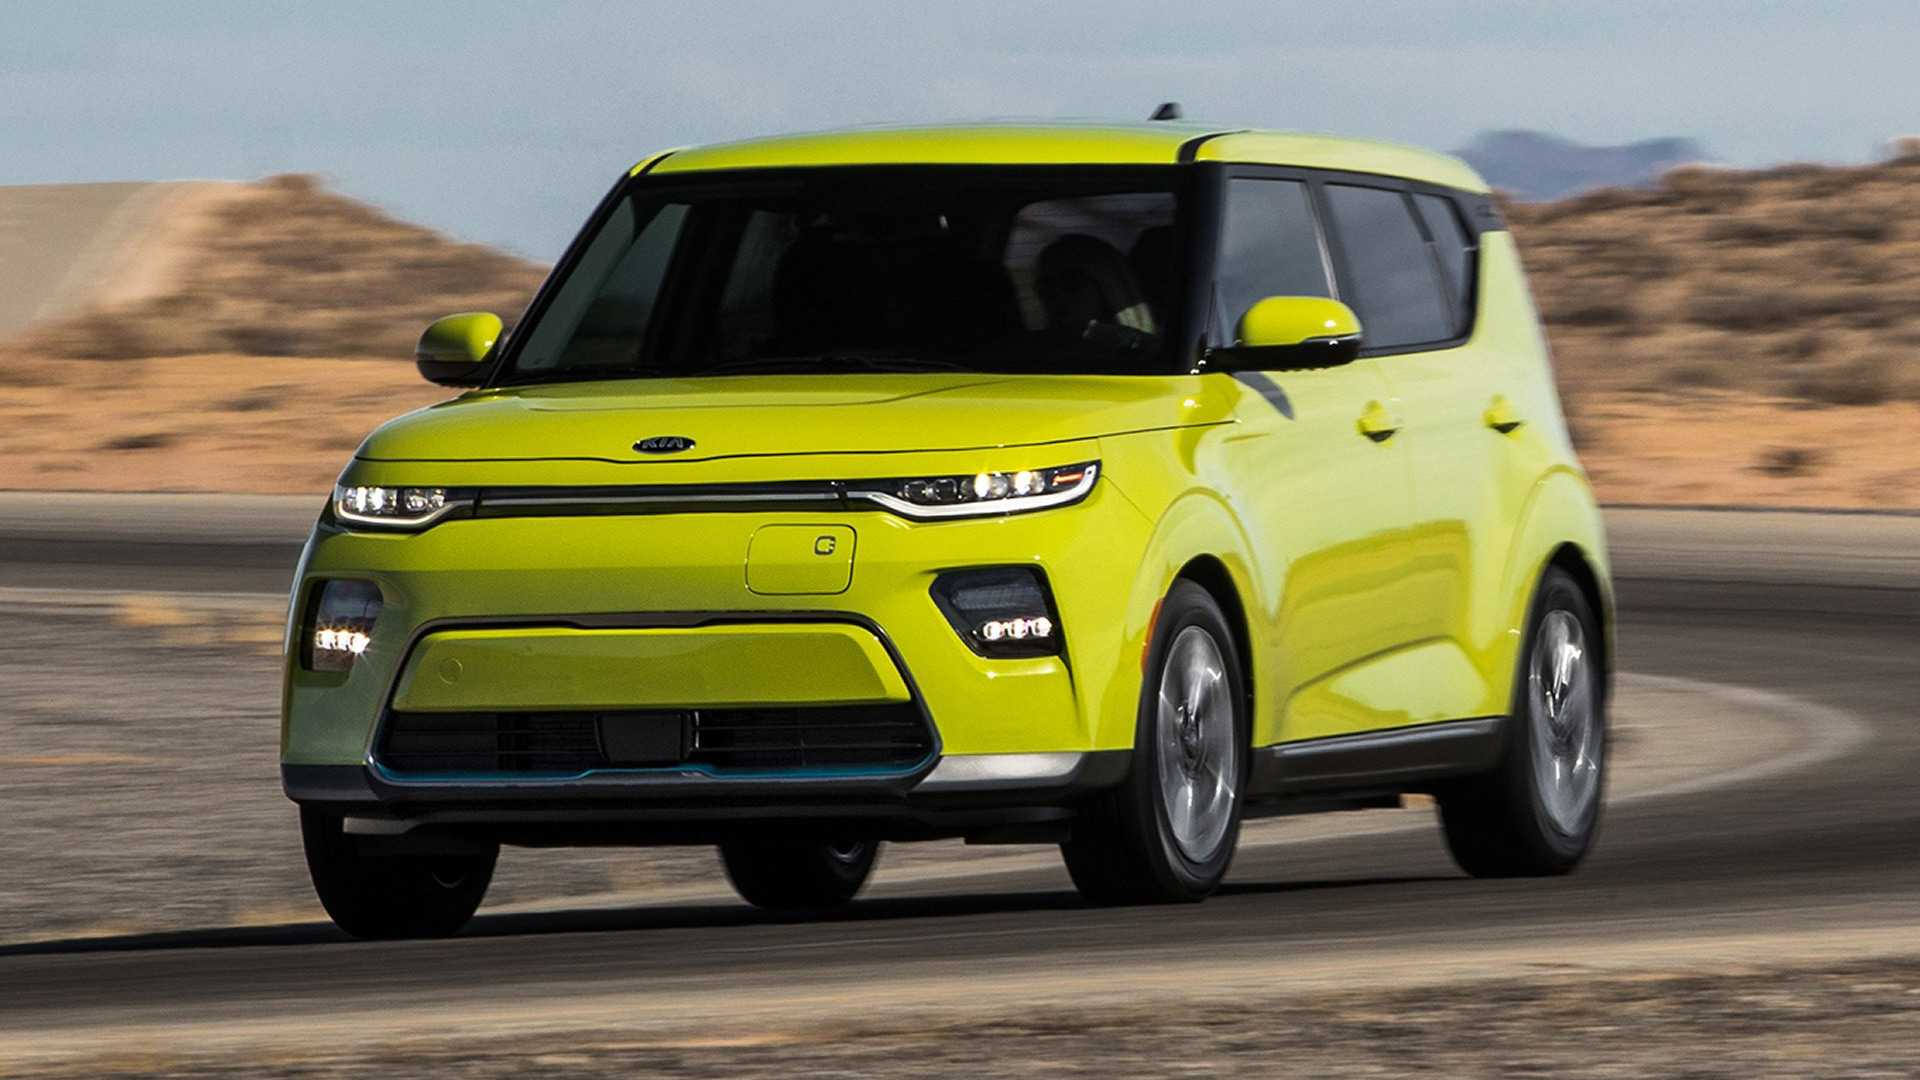 34 New 2020 Kia Soul Ev Range Review